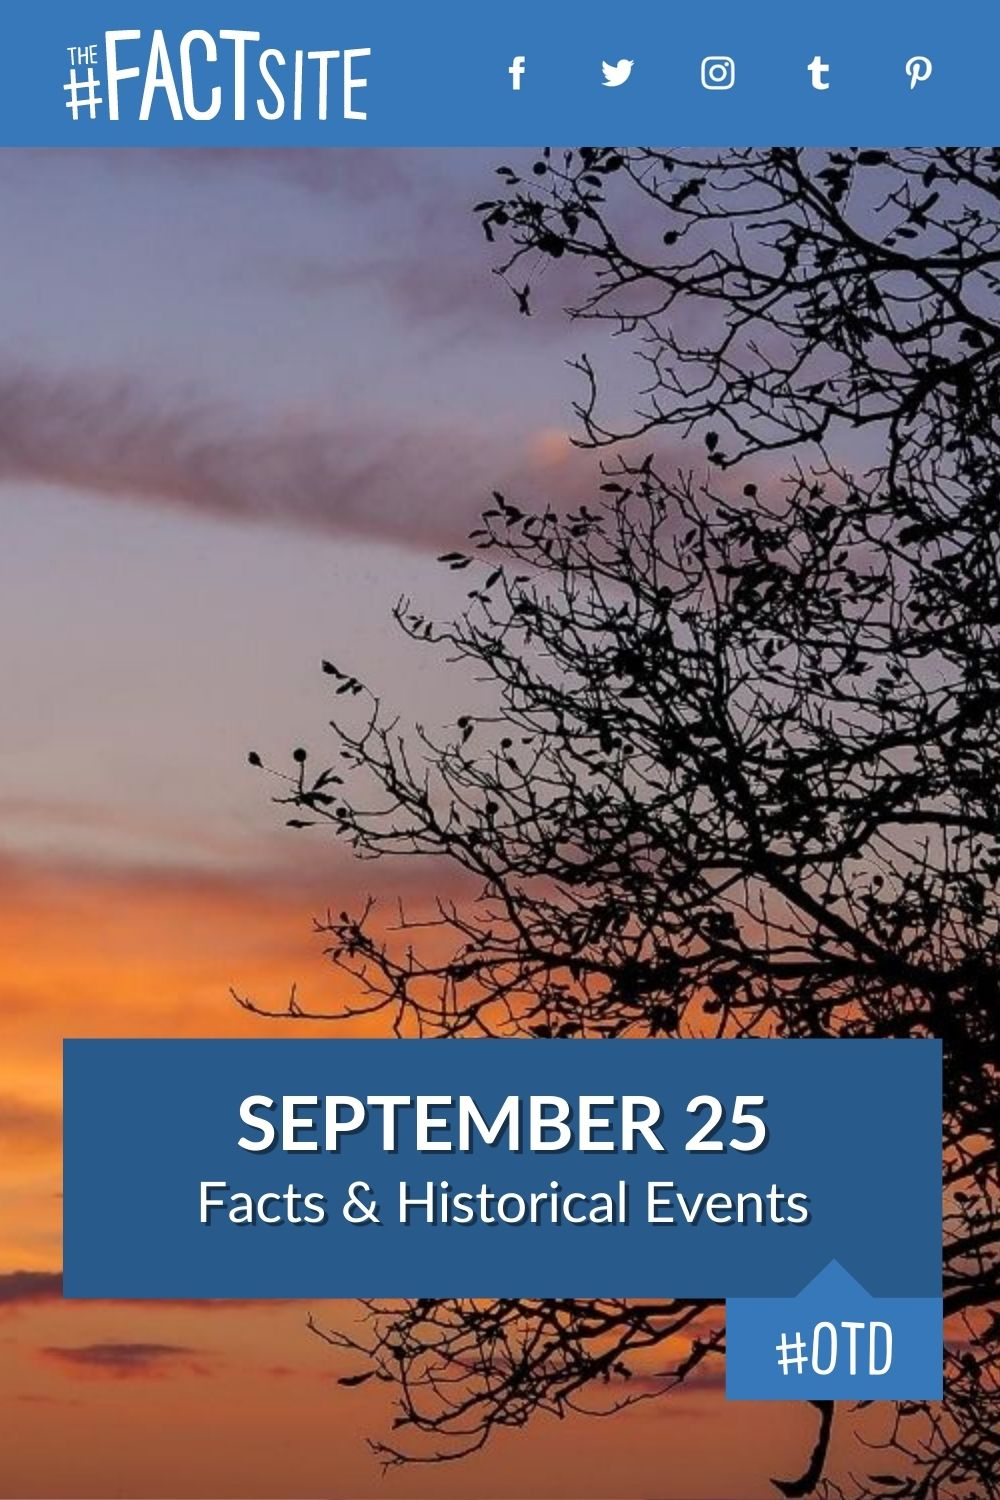 Facts & Historic Events That Happened on September 25